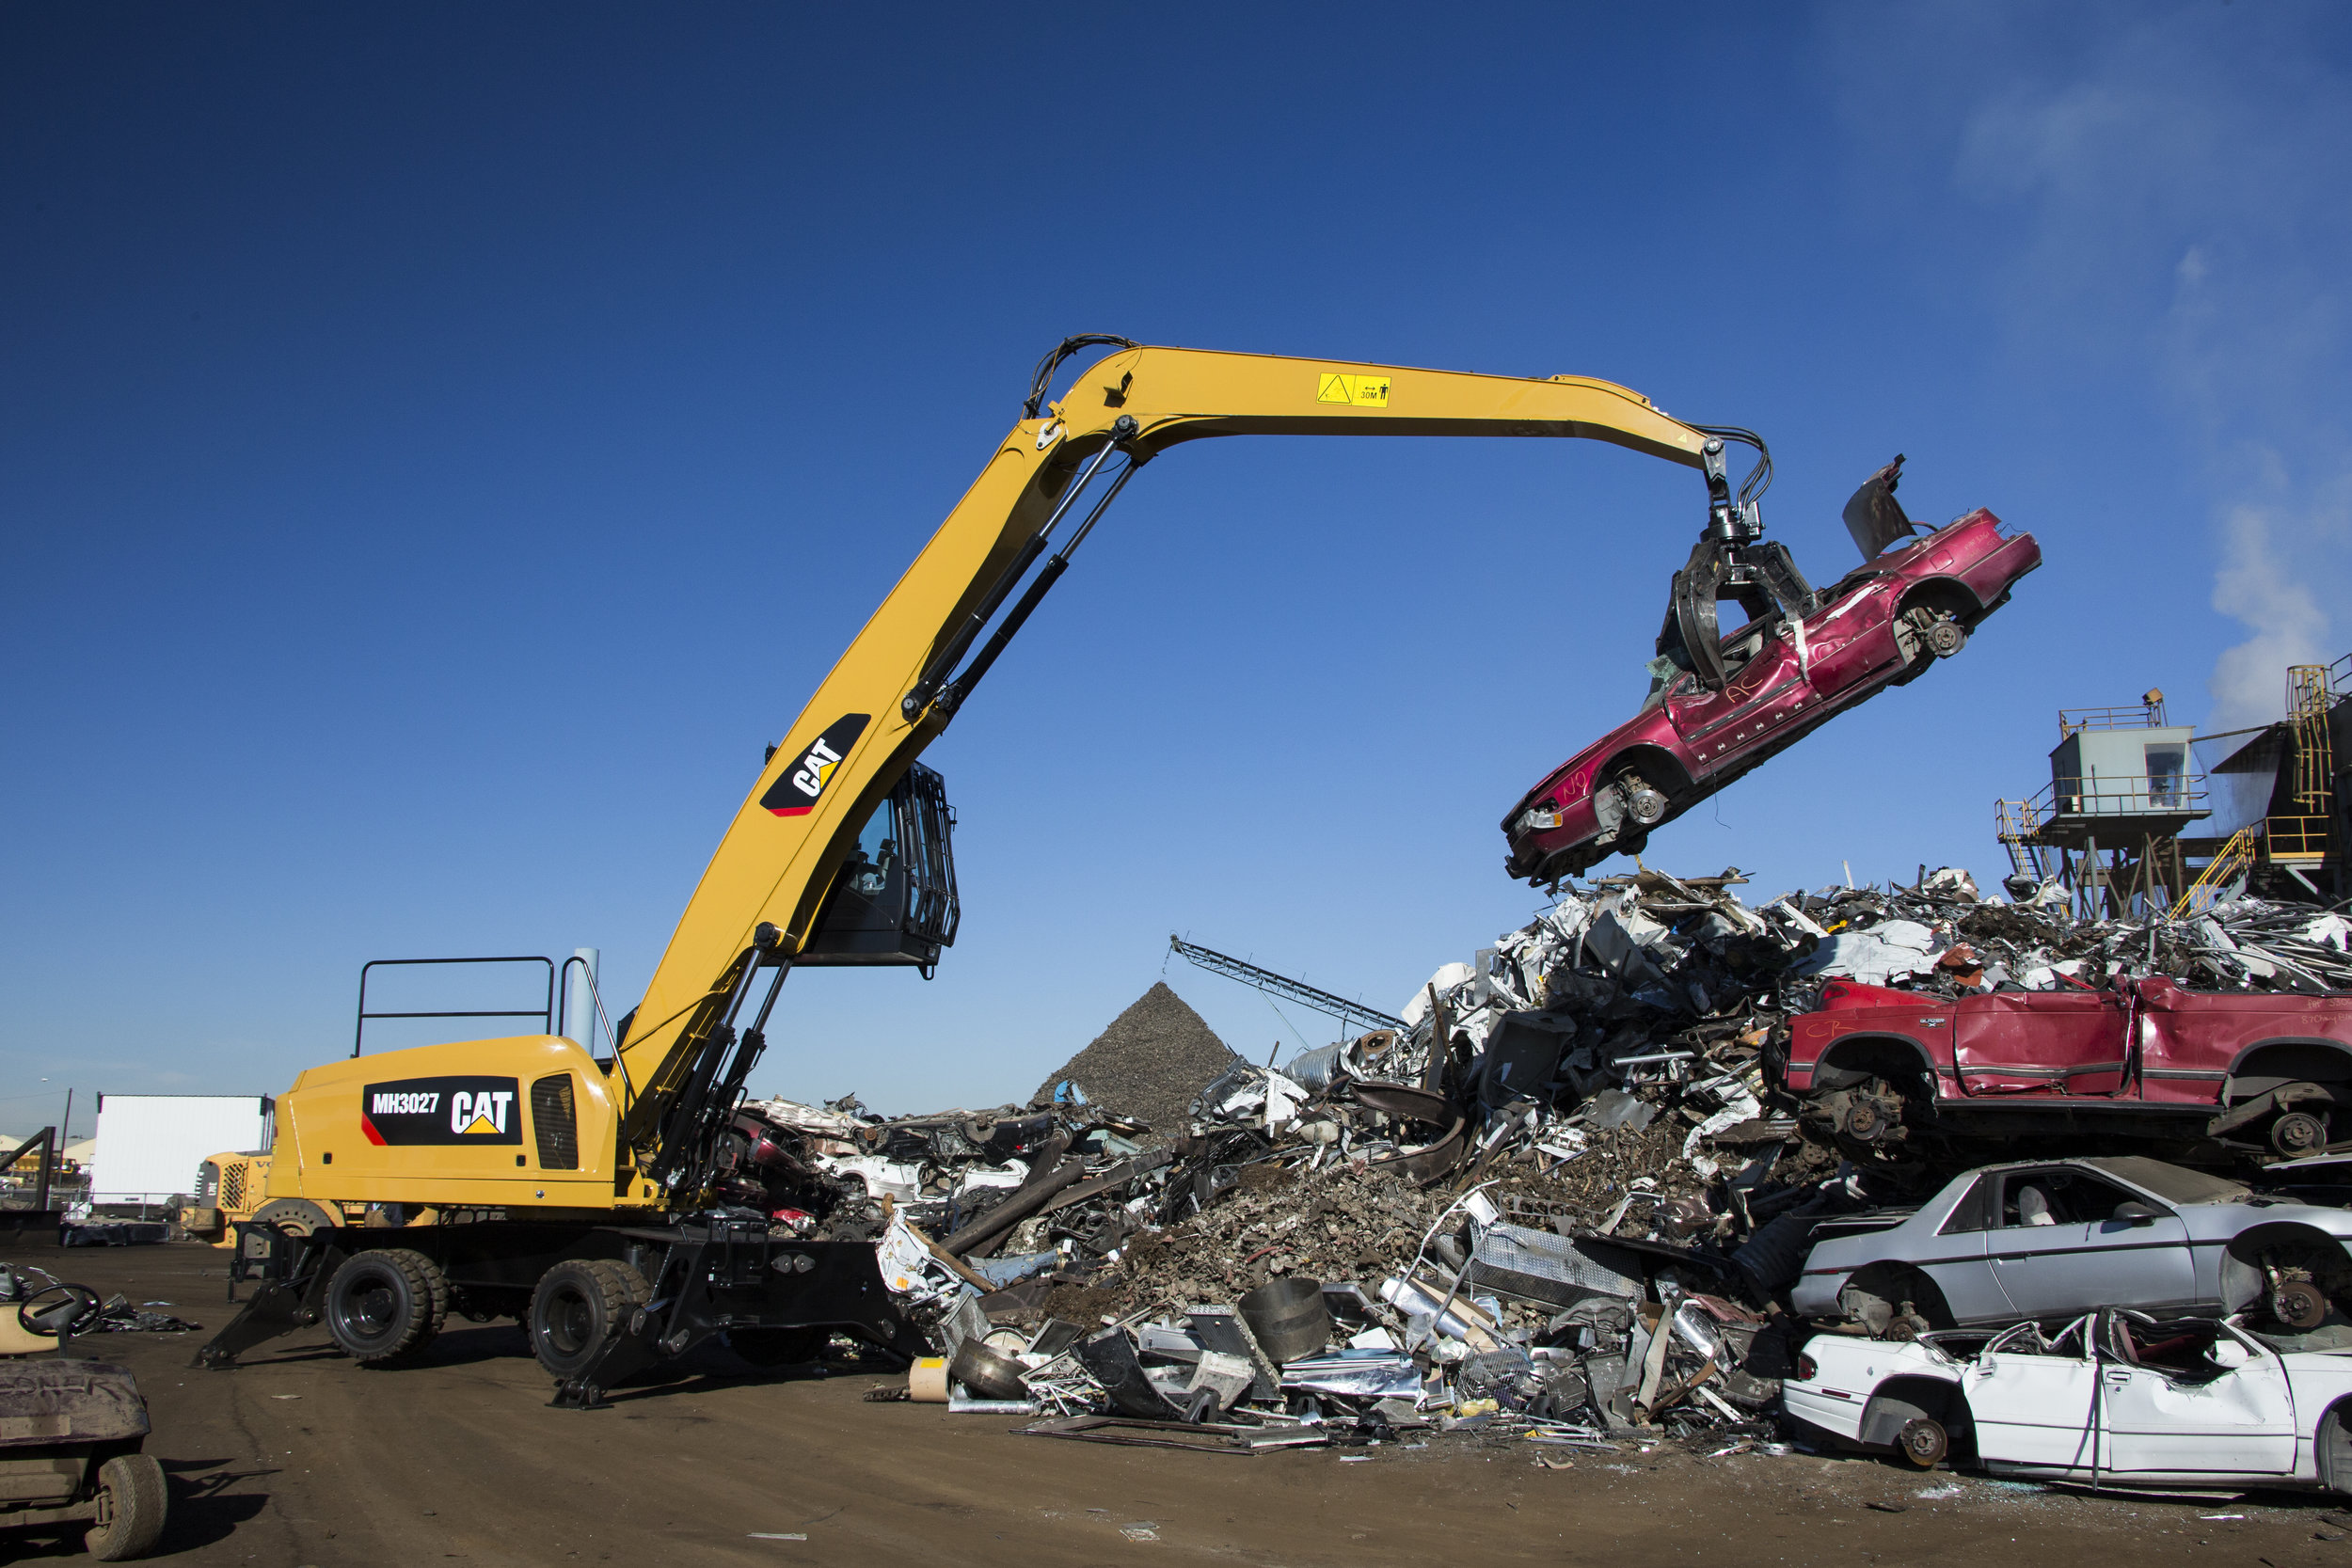 CAT MH3027 - A WHOLE NEW LOOK FOR SCRAP HANDLING